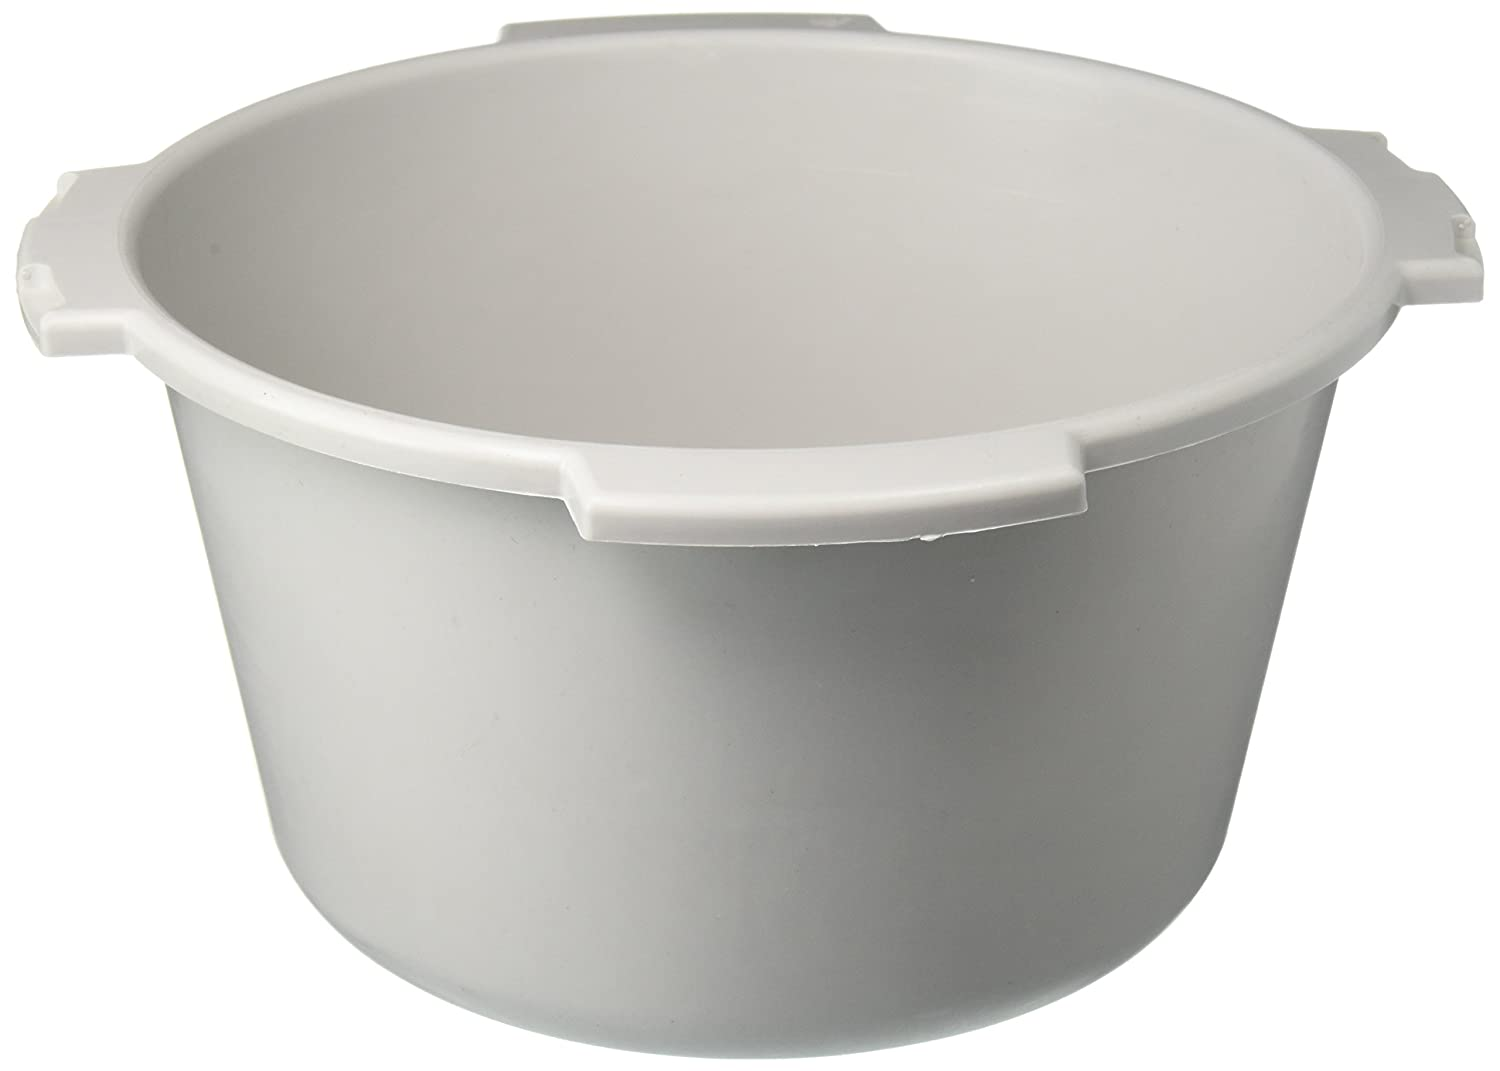 Grahamfield Lumex Everyday 7 Quart Capacity Commode Pail Without cover, Each Graham Field PP600009 GRF-PP600009